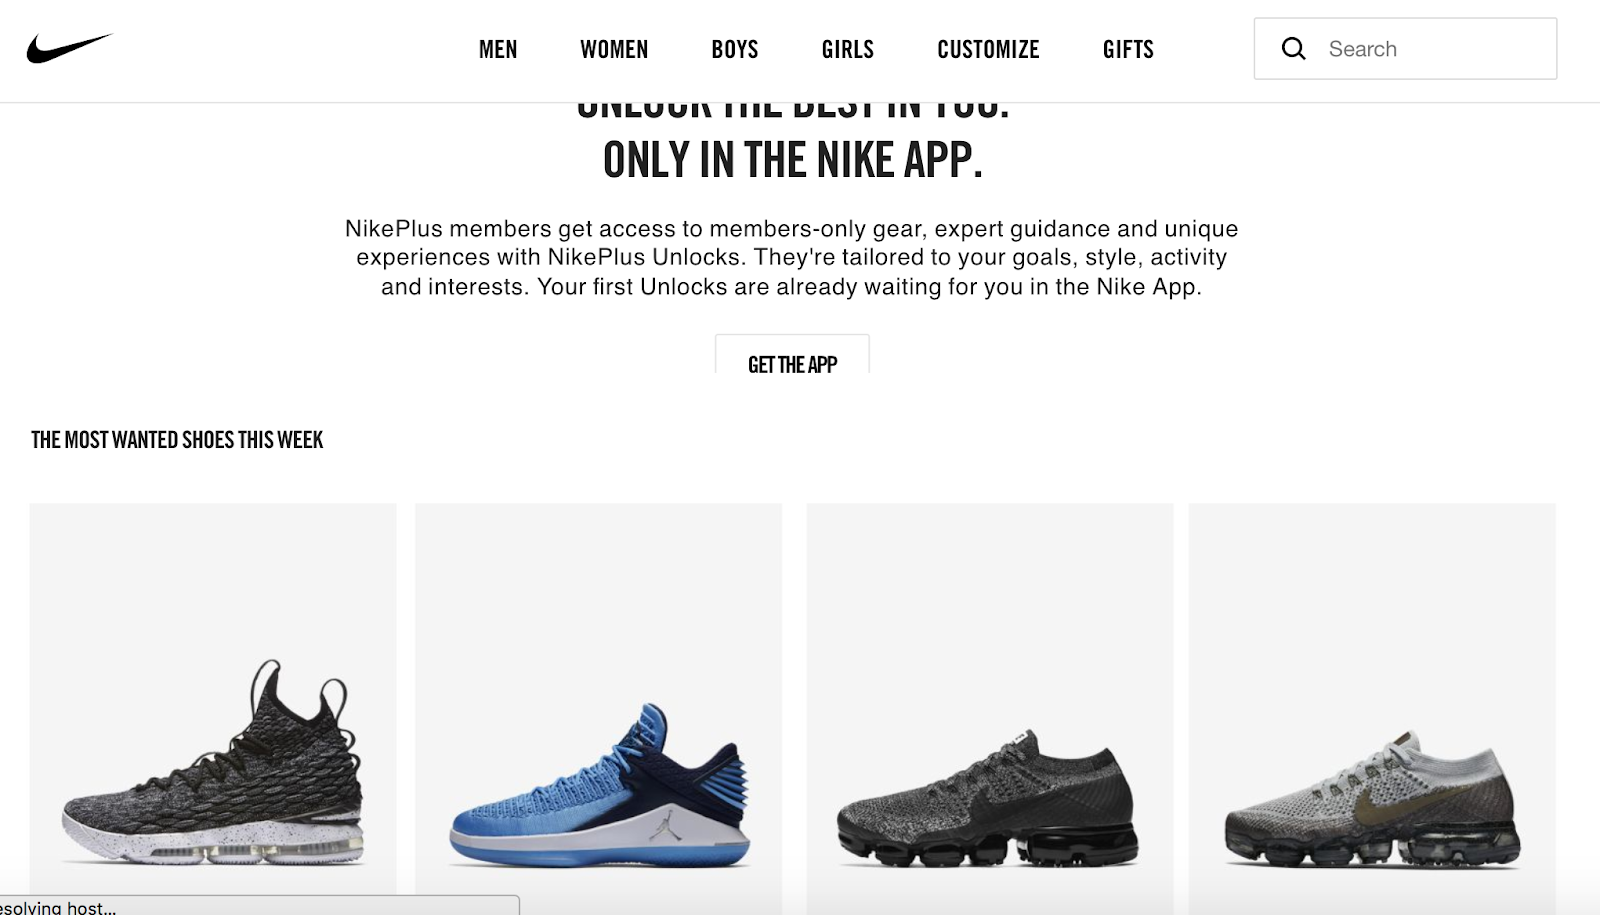 I can compare all of my options on the Nike homepage rather than be funneled to make a single product purchase.